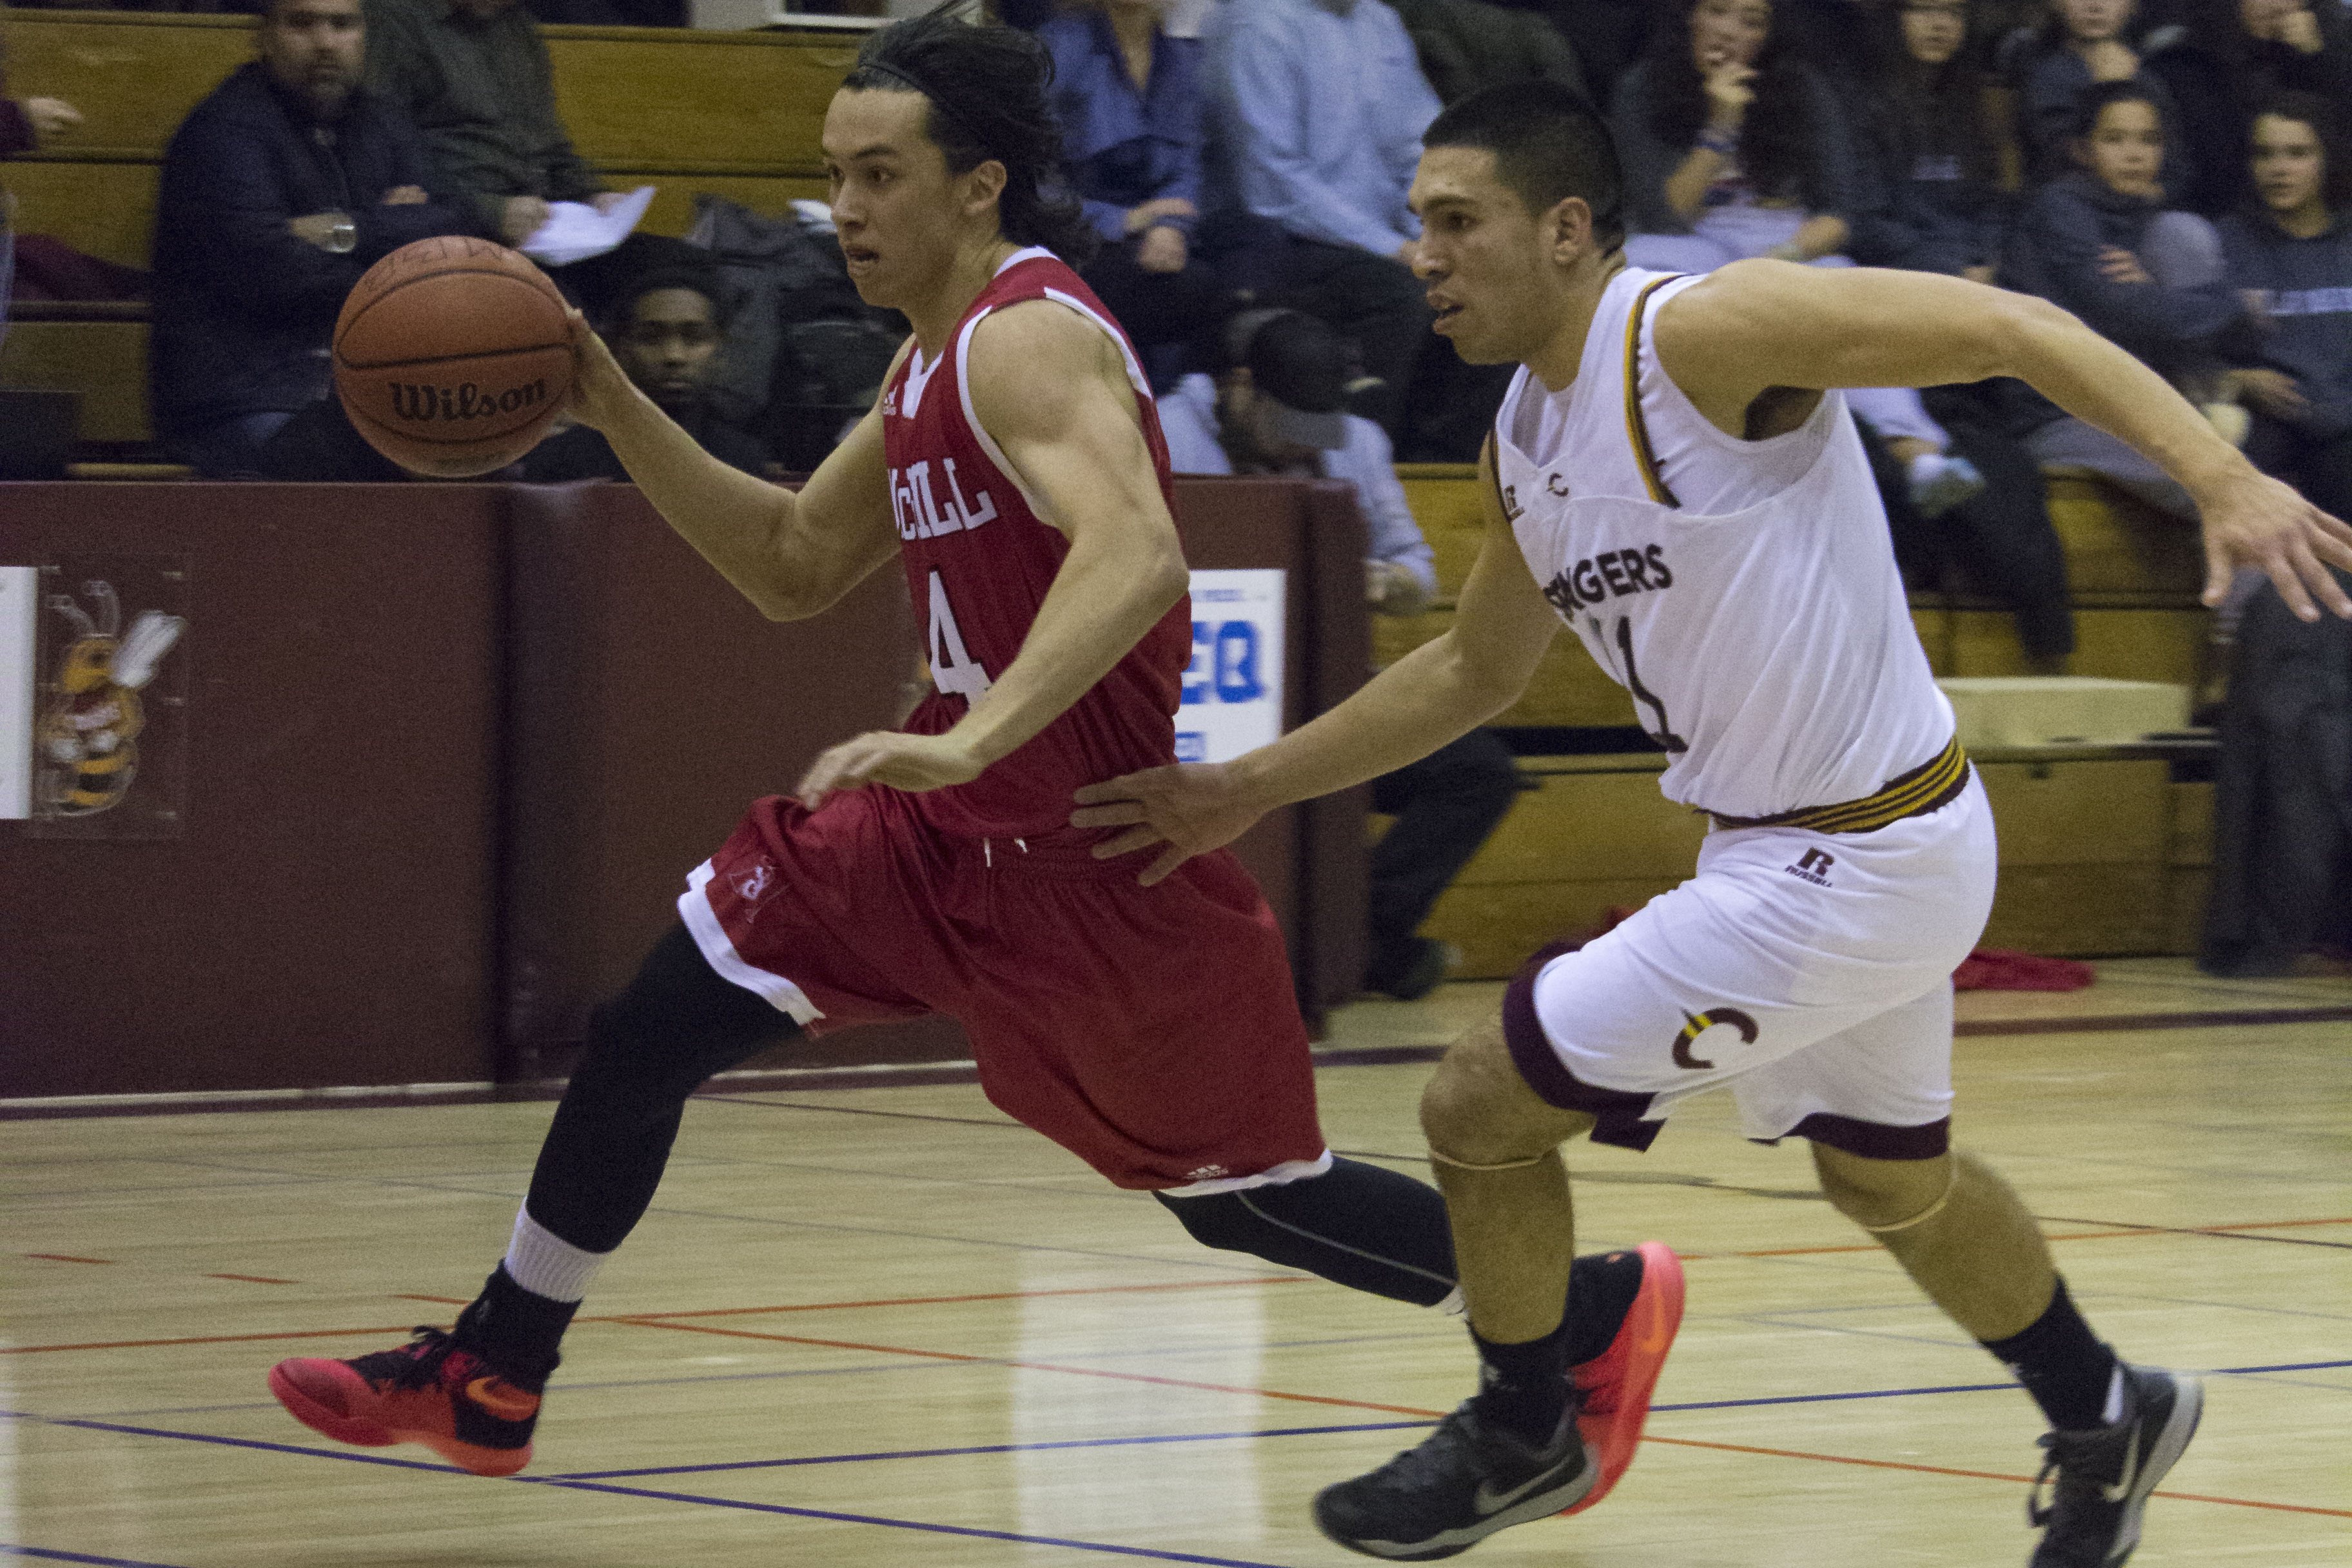 Point Guard Ricardo Monge fights off a Redmen player during their win on Jan. 21. Photo by Kelsey Litwin.